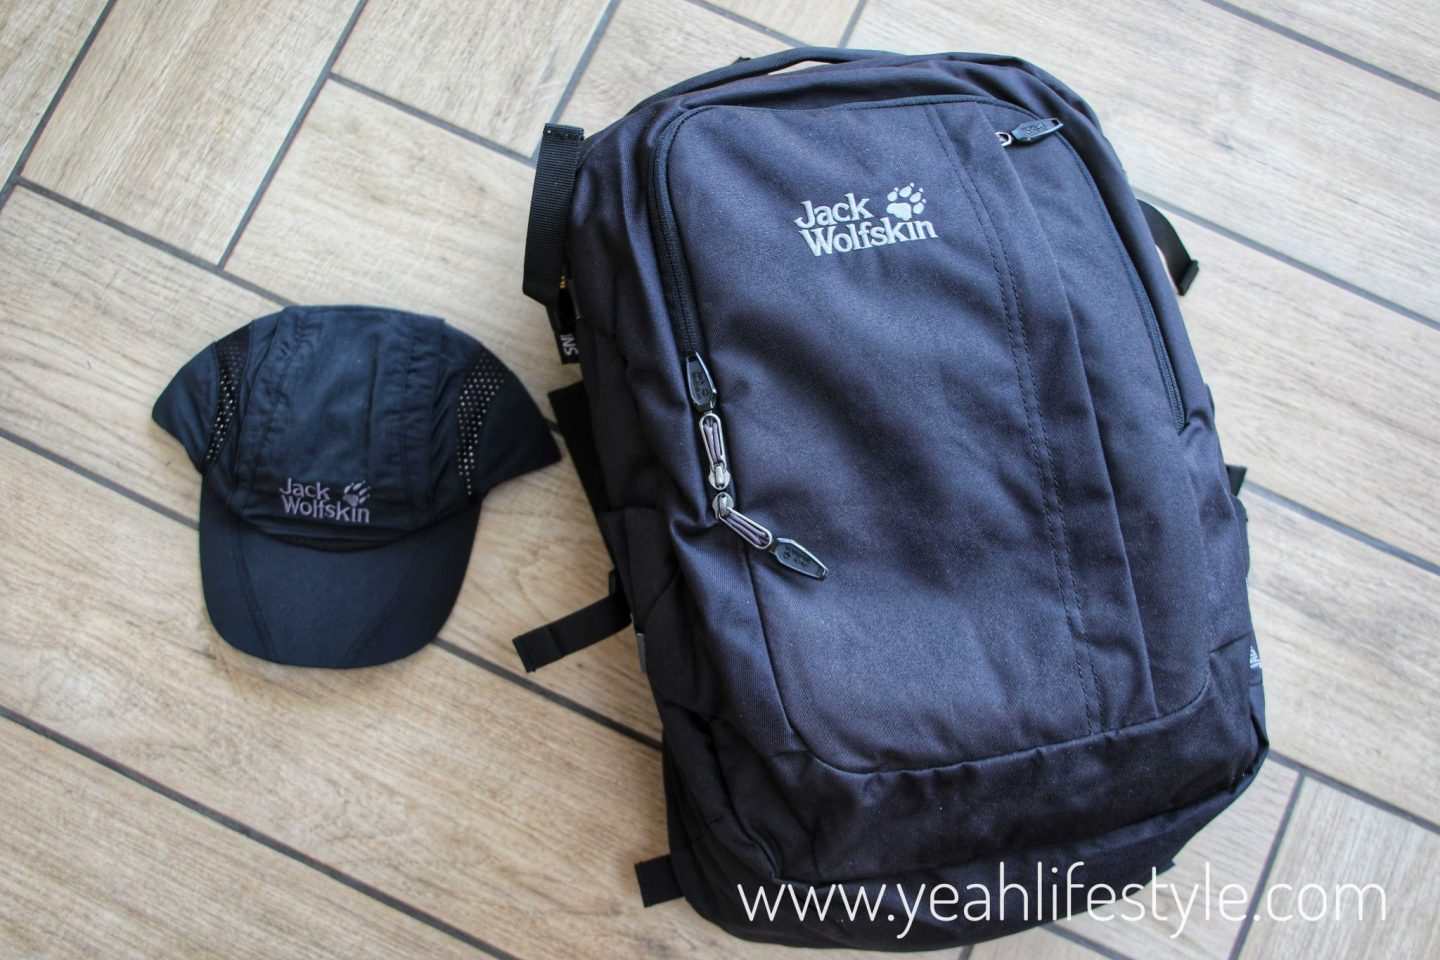 Simply Hike's Jack Wolfskin Hiking Cap and Rucksack Review *